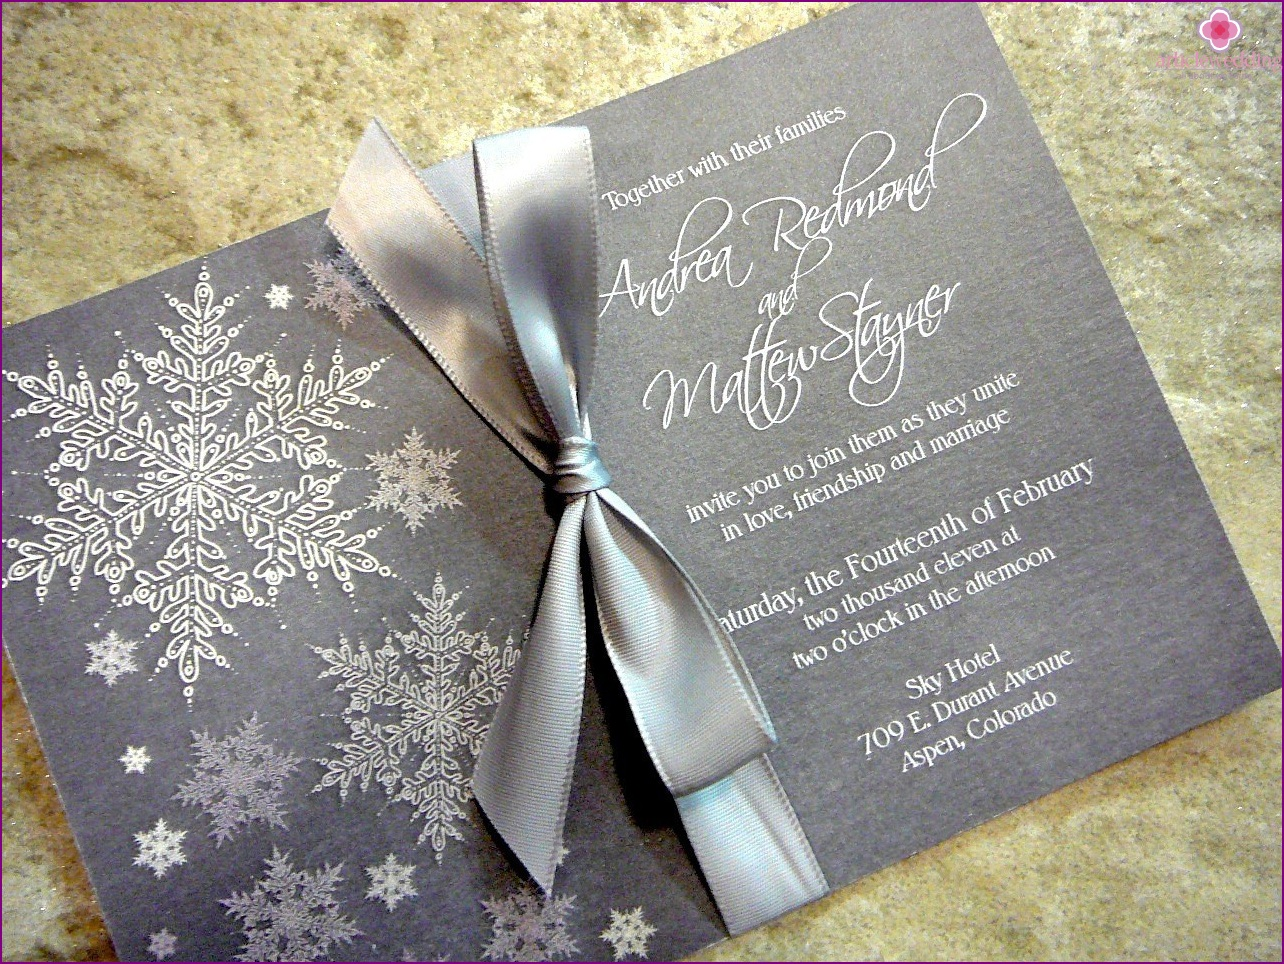 Invitation for a winter wedding